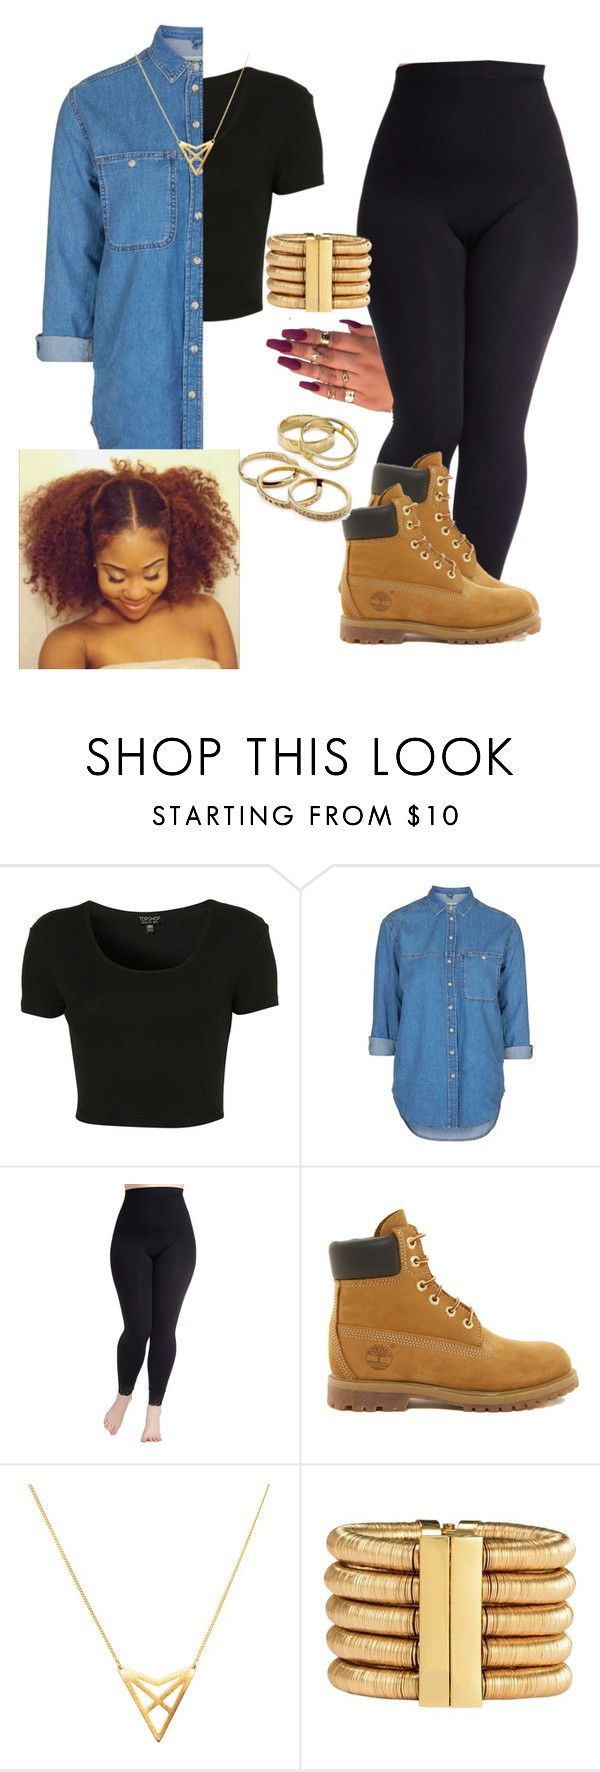 """""""Wet Dreamz~J.Cole"""" by kitty900 ❤ liked on Polyvore featuring Topshop, Timberland, Dutch Basics, Balmain, Kendra Scott and plus size clothing"""